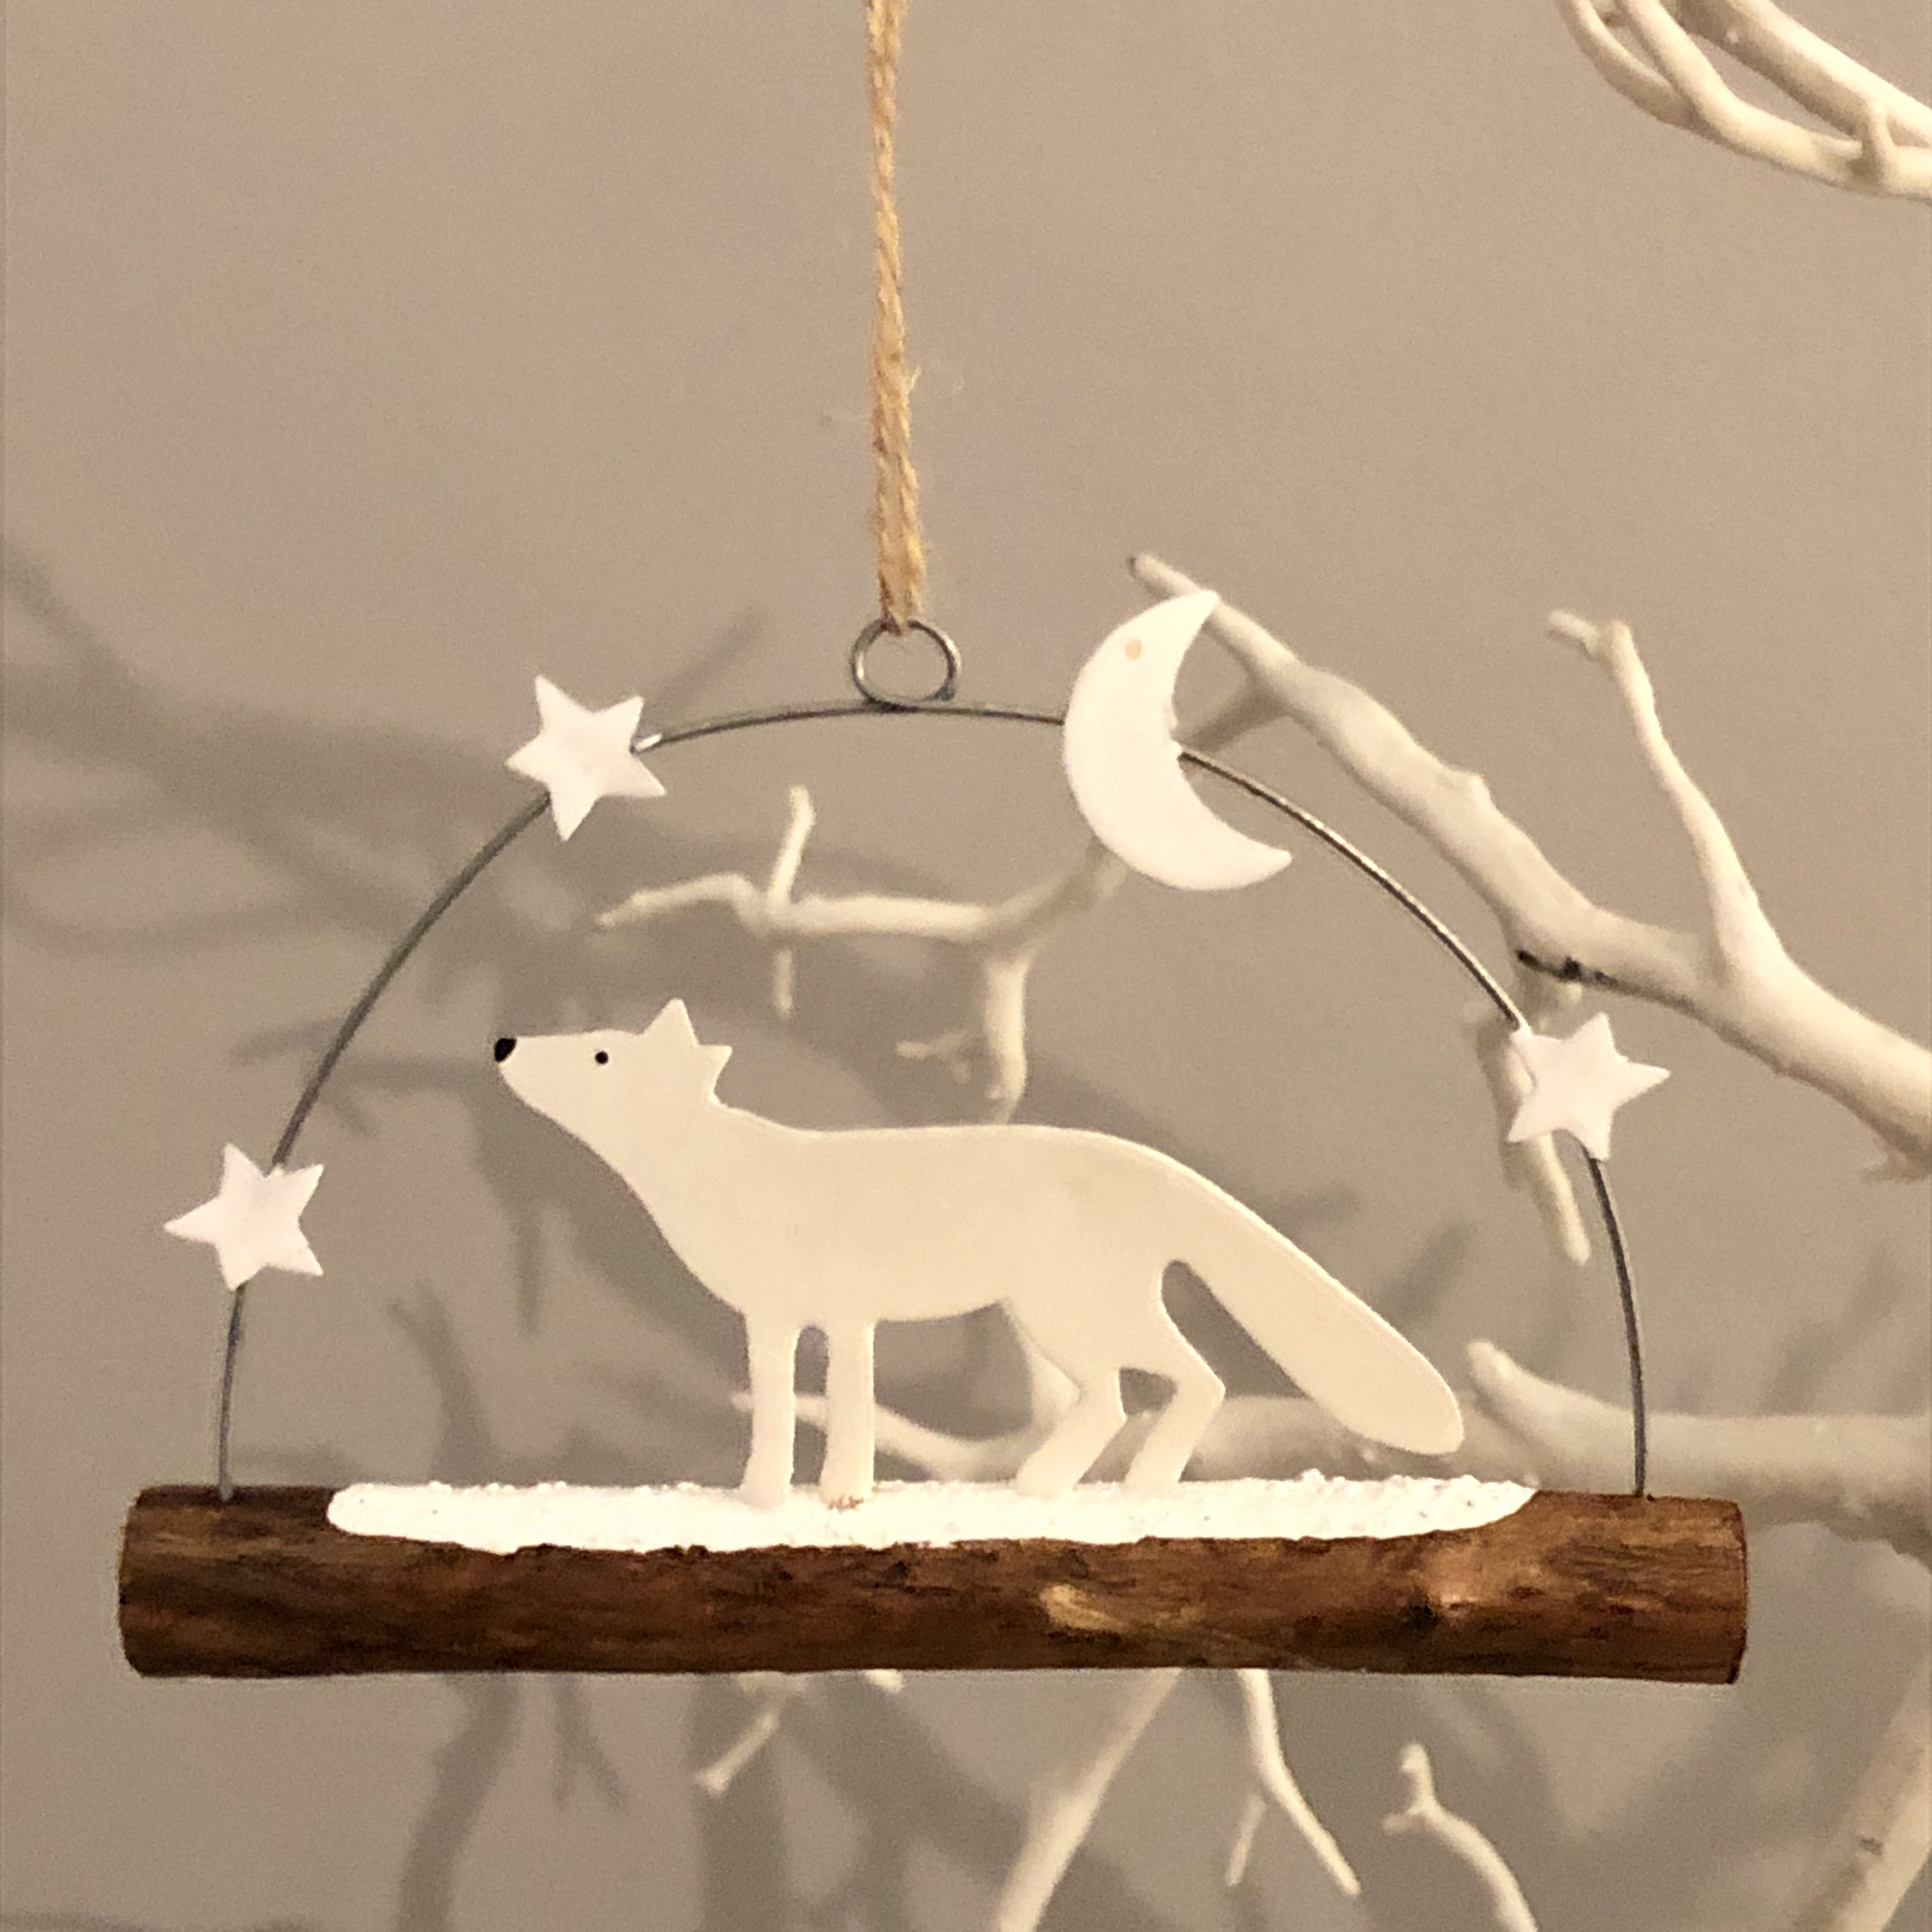 Artic fox  under the stars hanging Christmas decoration by shoeless joe